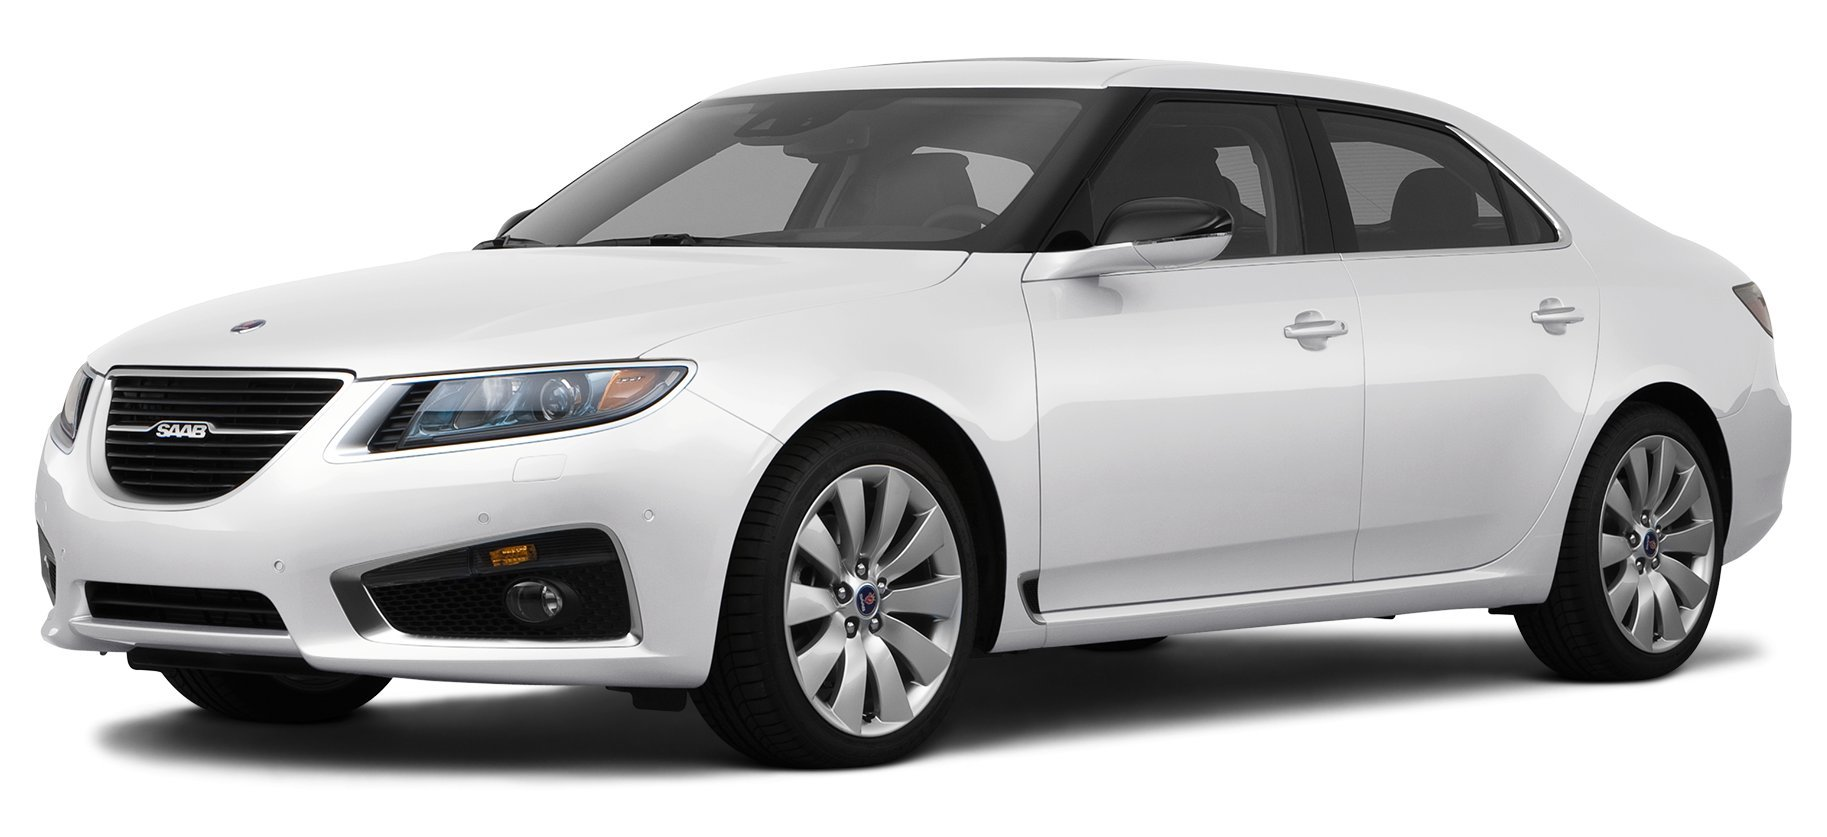 2011 saab 9 5 reviews images and specs vehicles. Black Bedroom Furniture Sets. Home Design Ideas